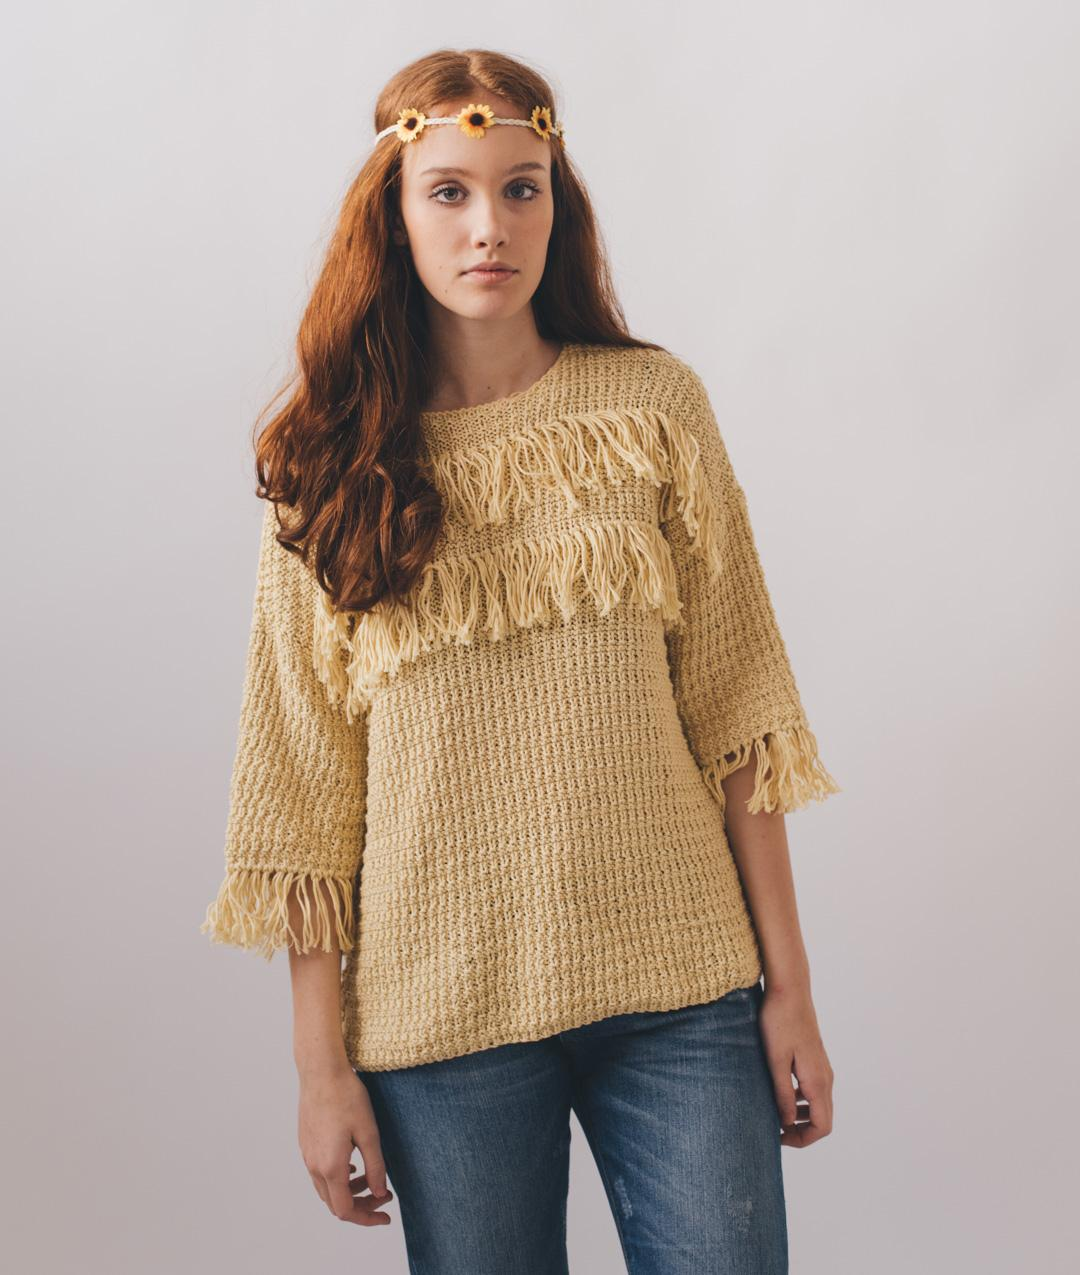 Sweaters and Tops - Cotton - Peace & Fringes Sweater - 1